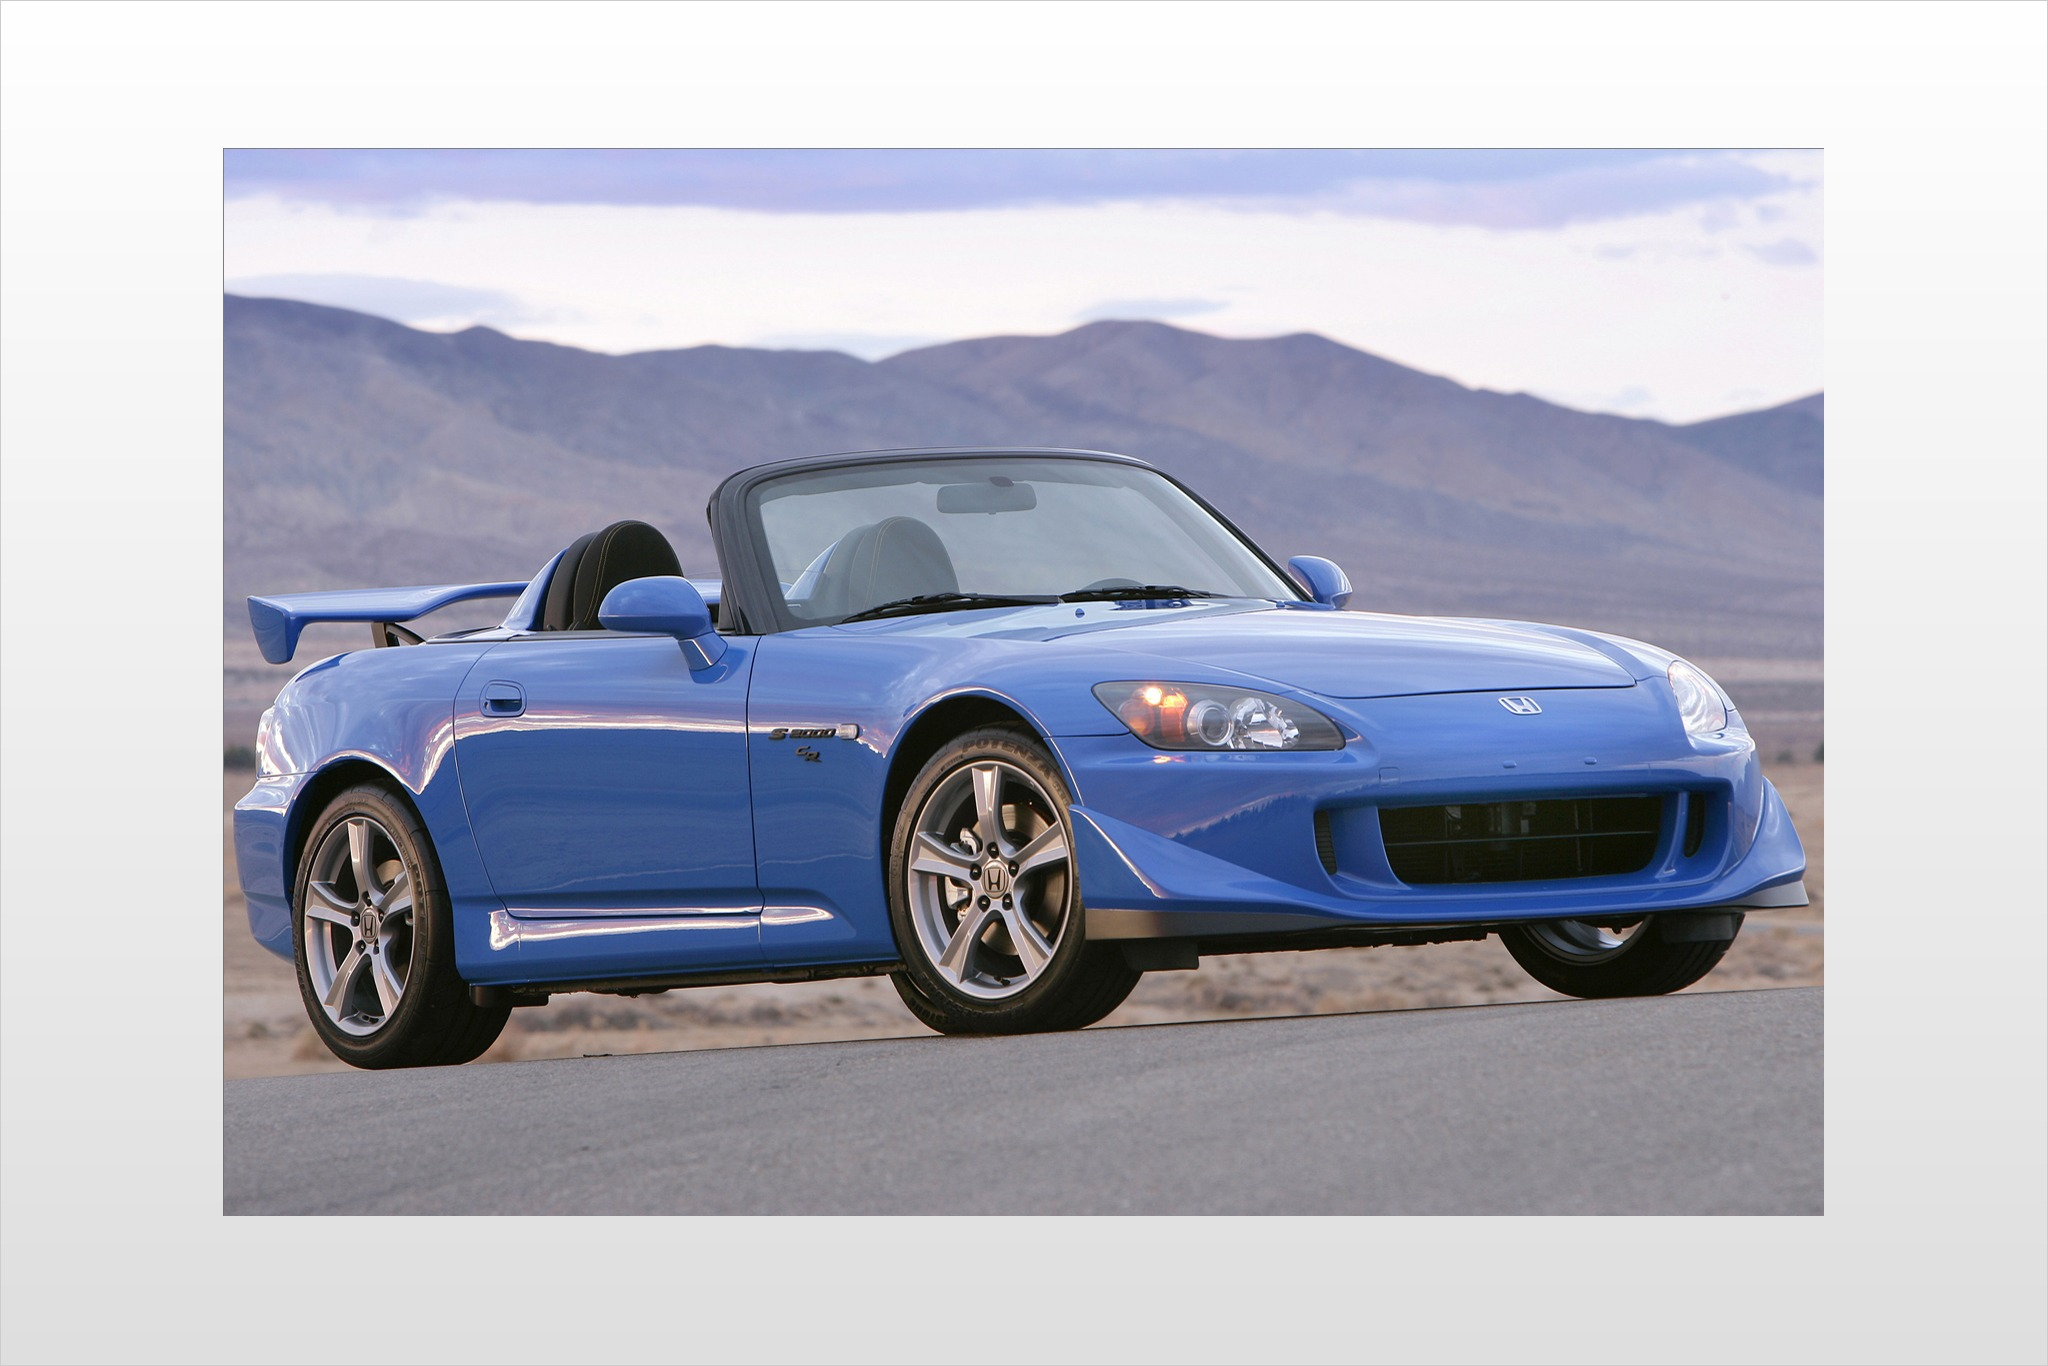 2008 Honda S2000 CR Cente interior #4